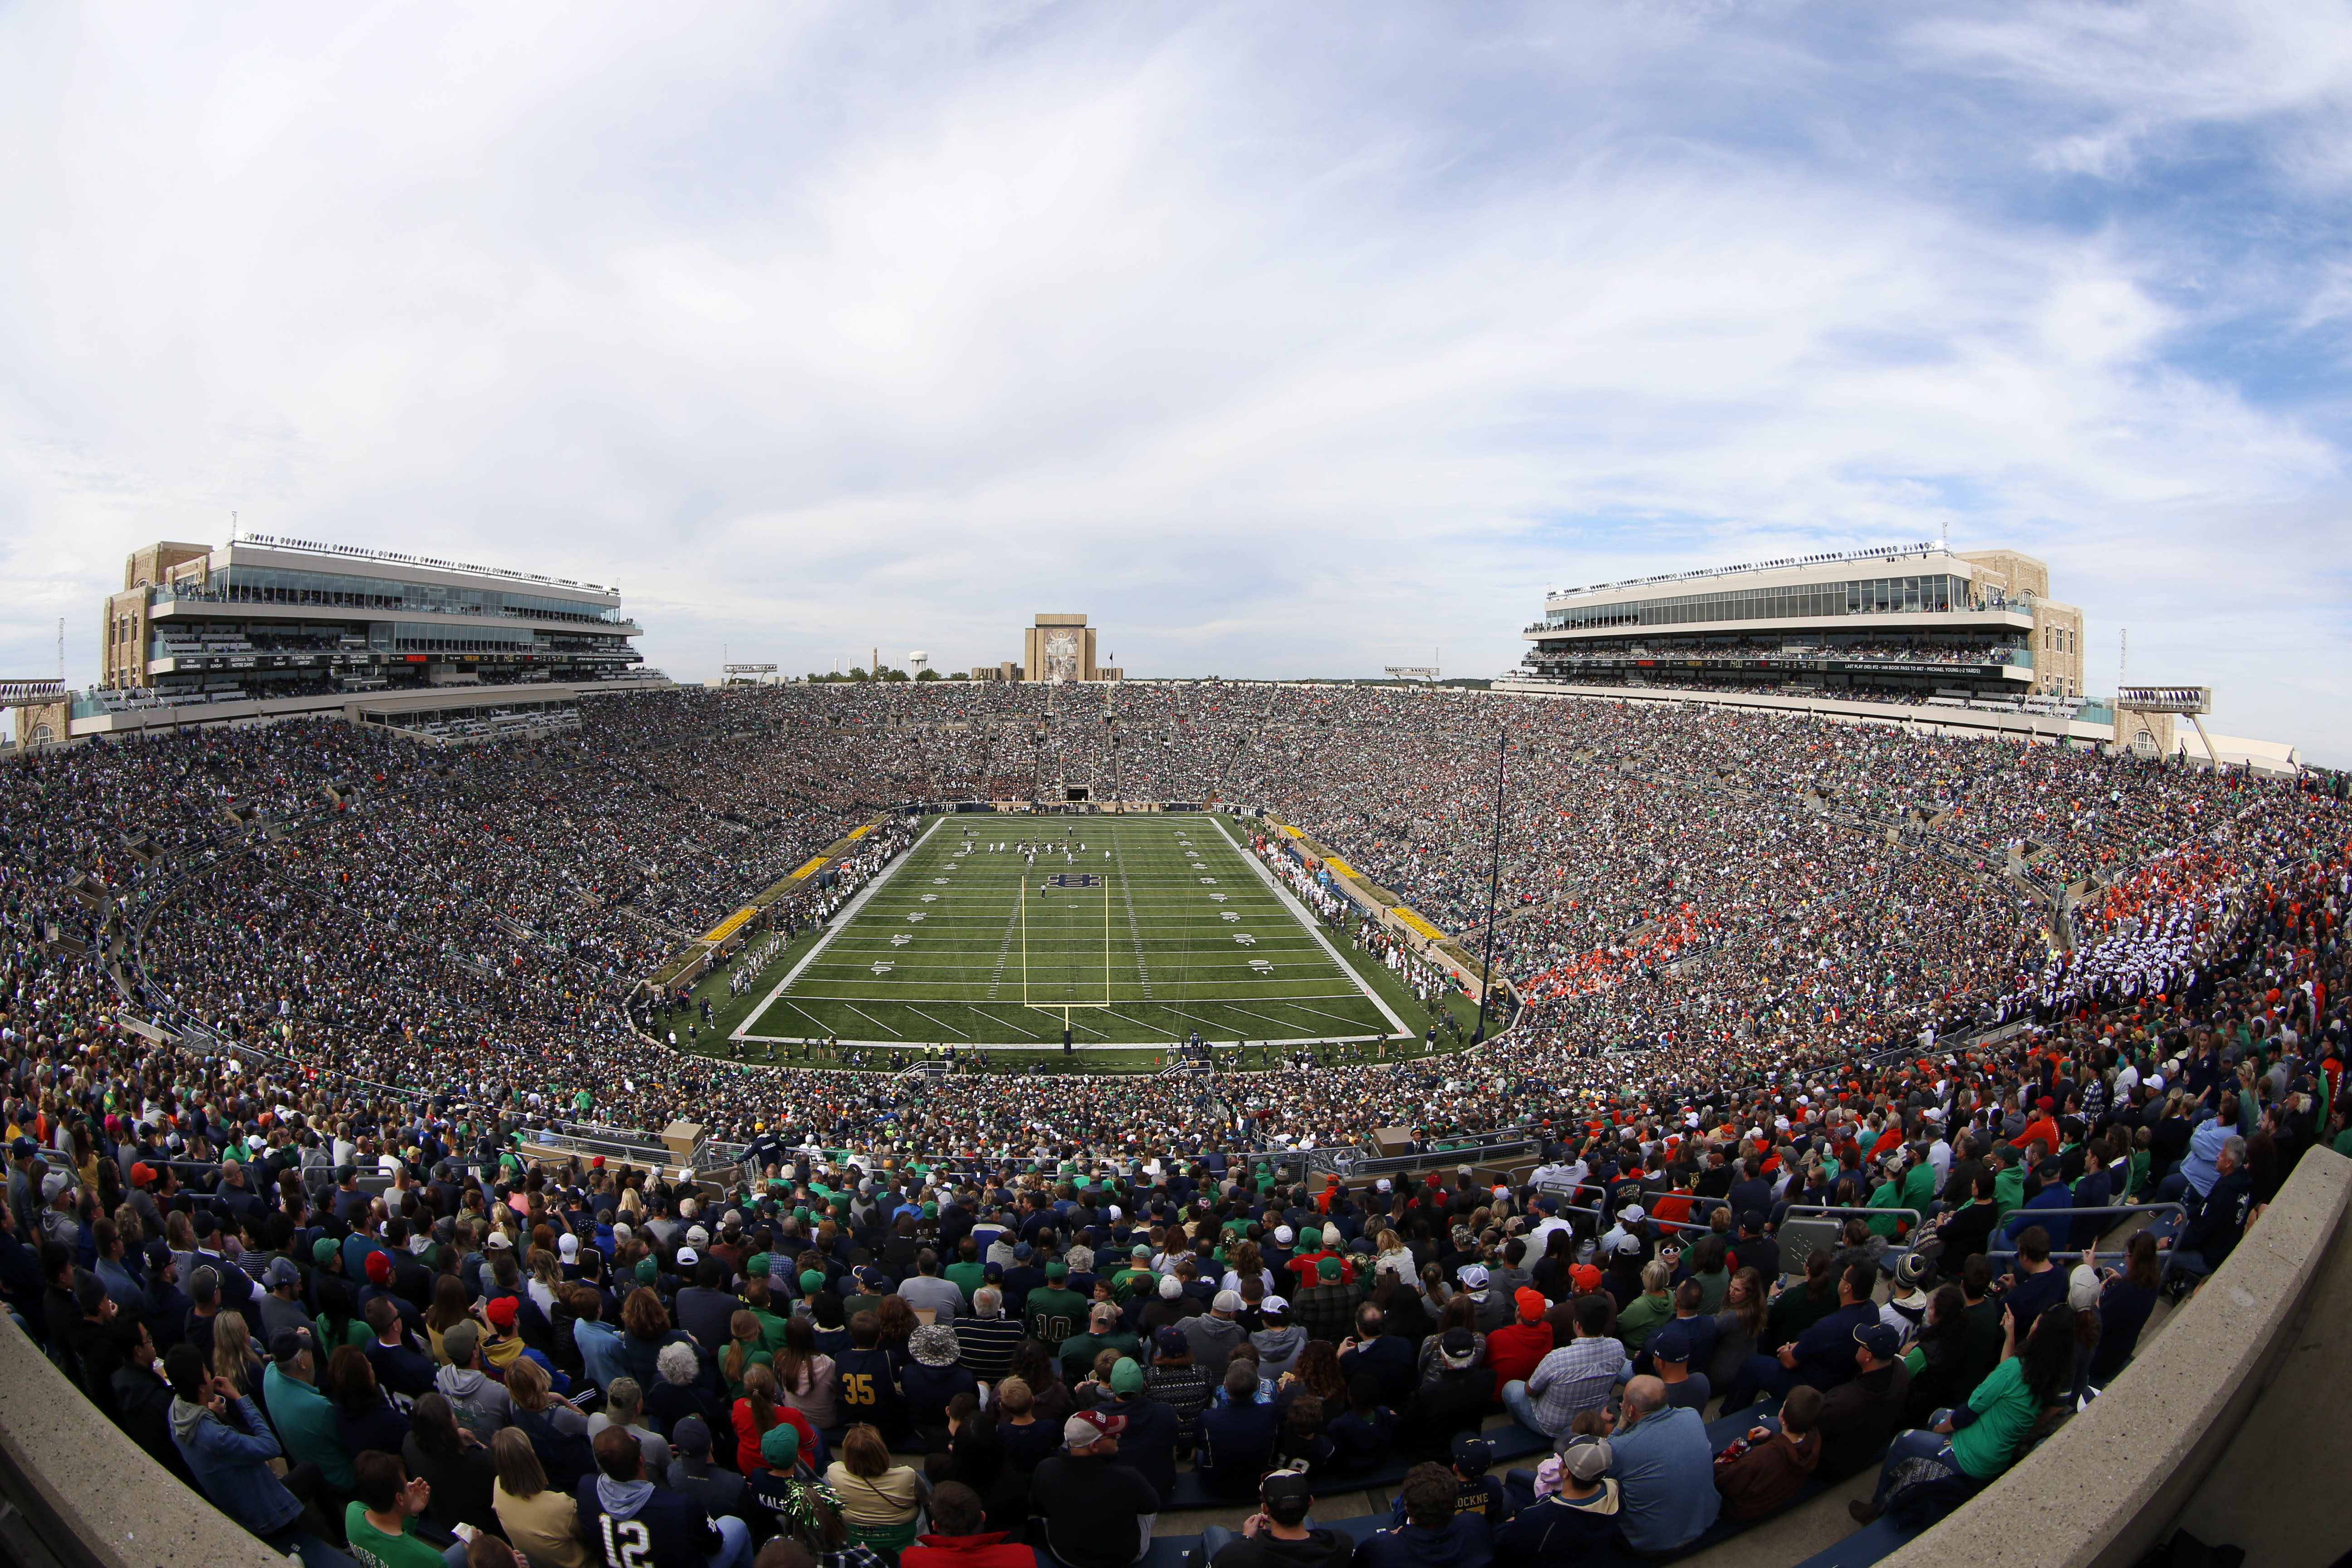 Notre Dame president: Unlikely stadium will be full in 2020